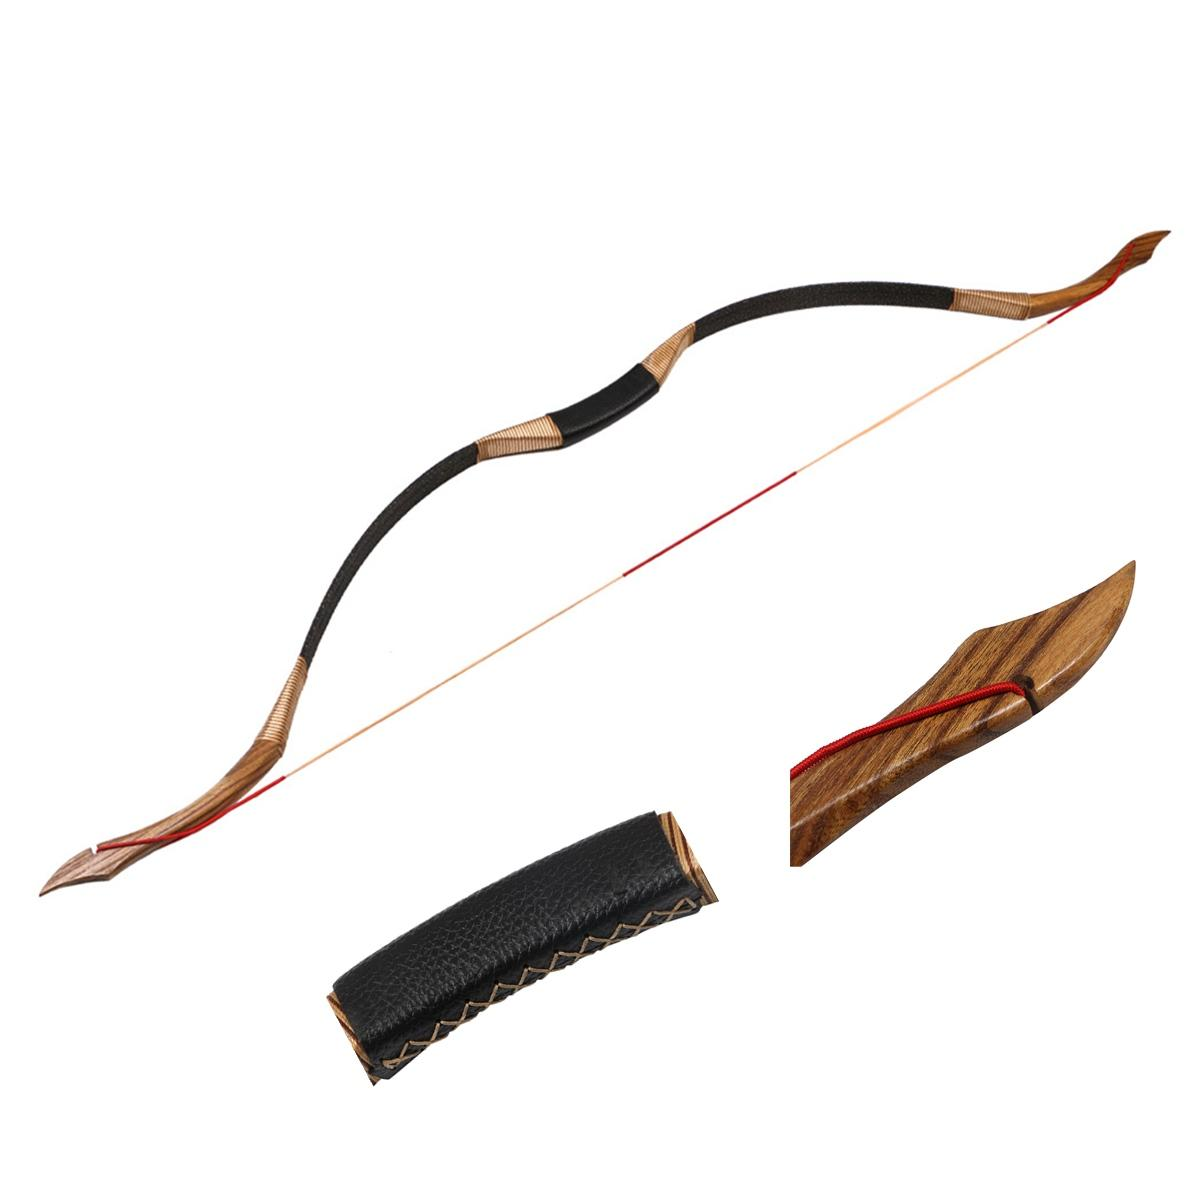 50lbs Traditional Archery Hunting Handmade Recurve Bow Mongolian Horse Longbow Bowstrings